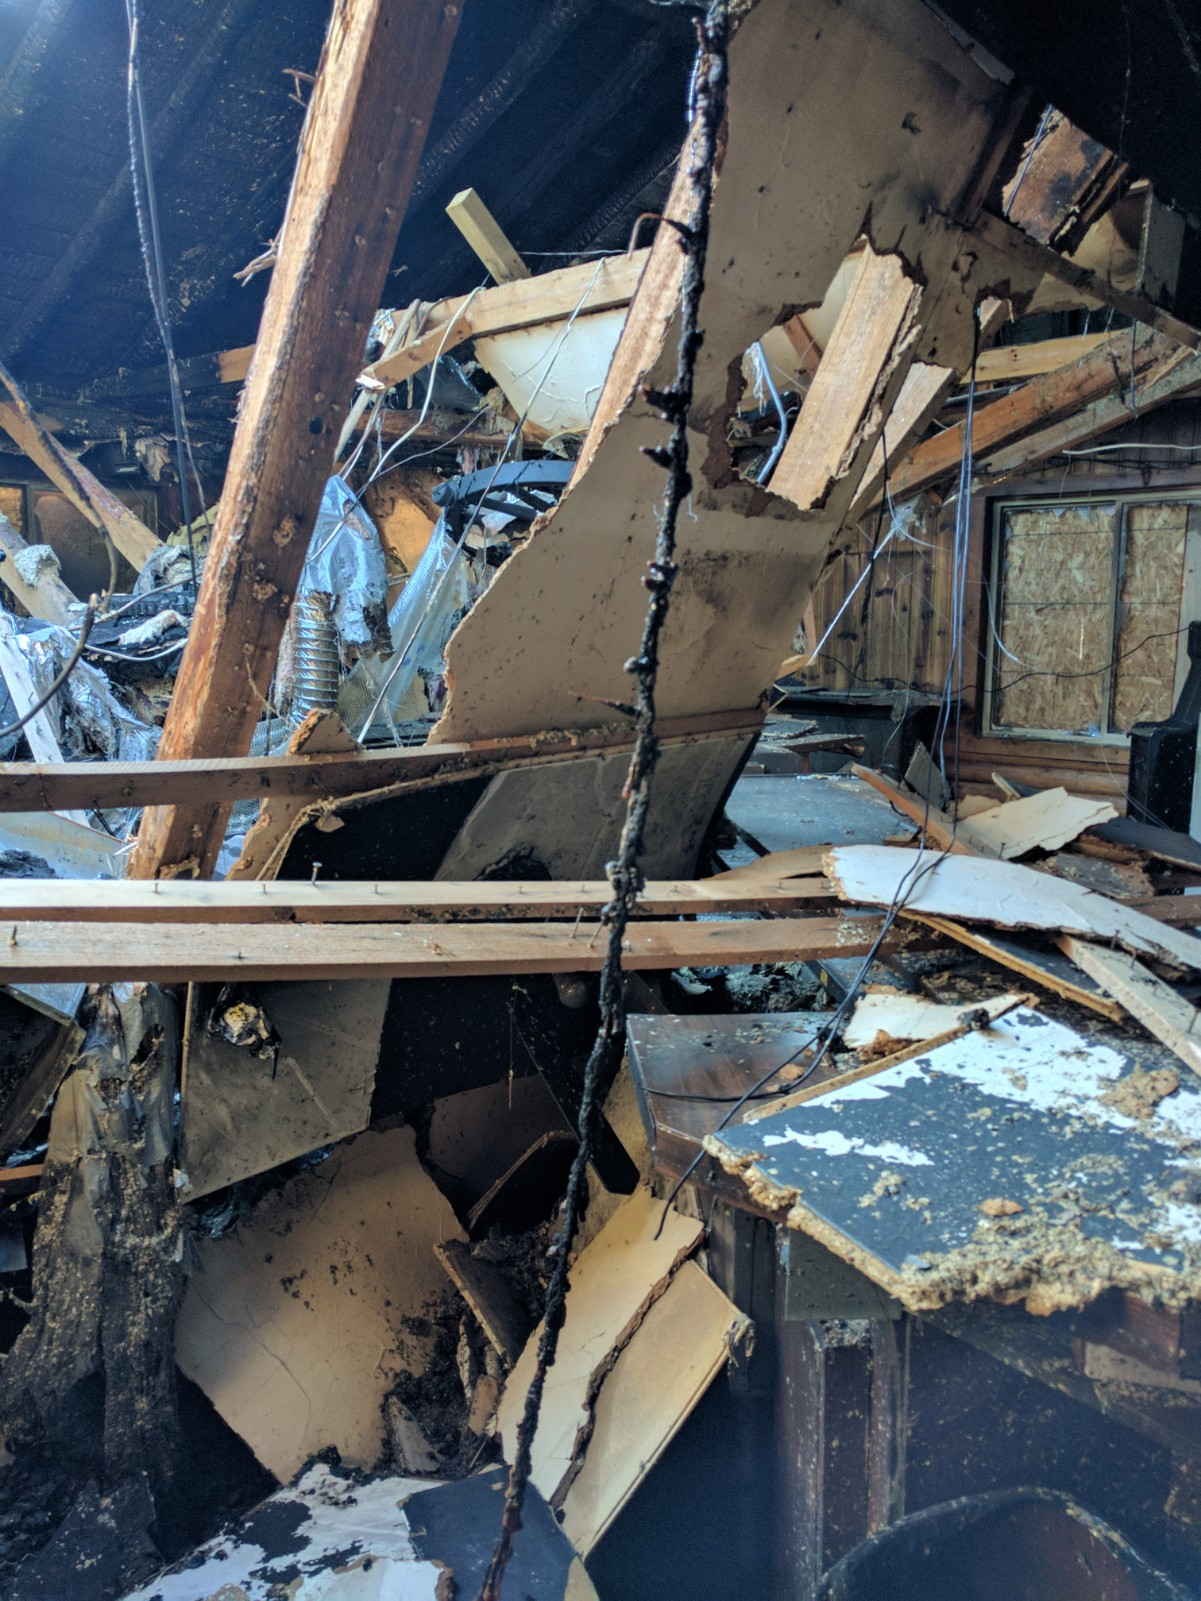 Debbie G. Fire Damage